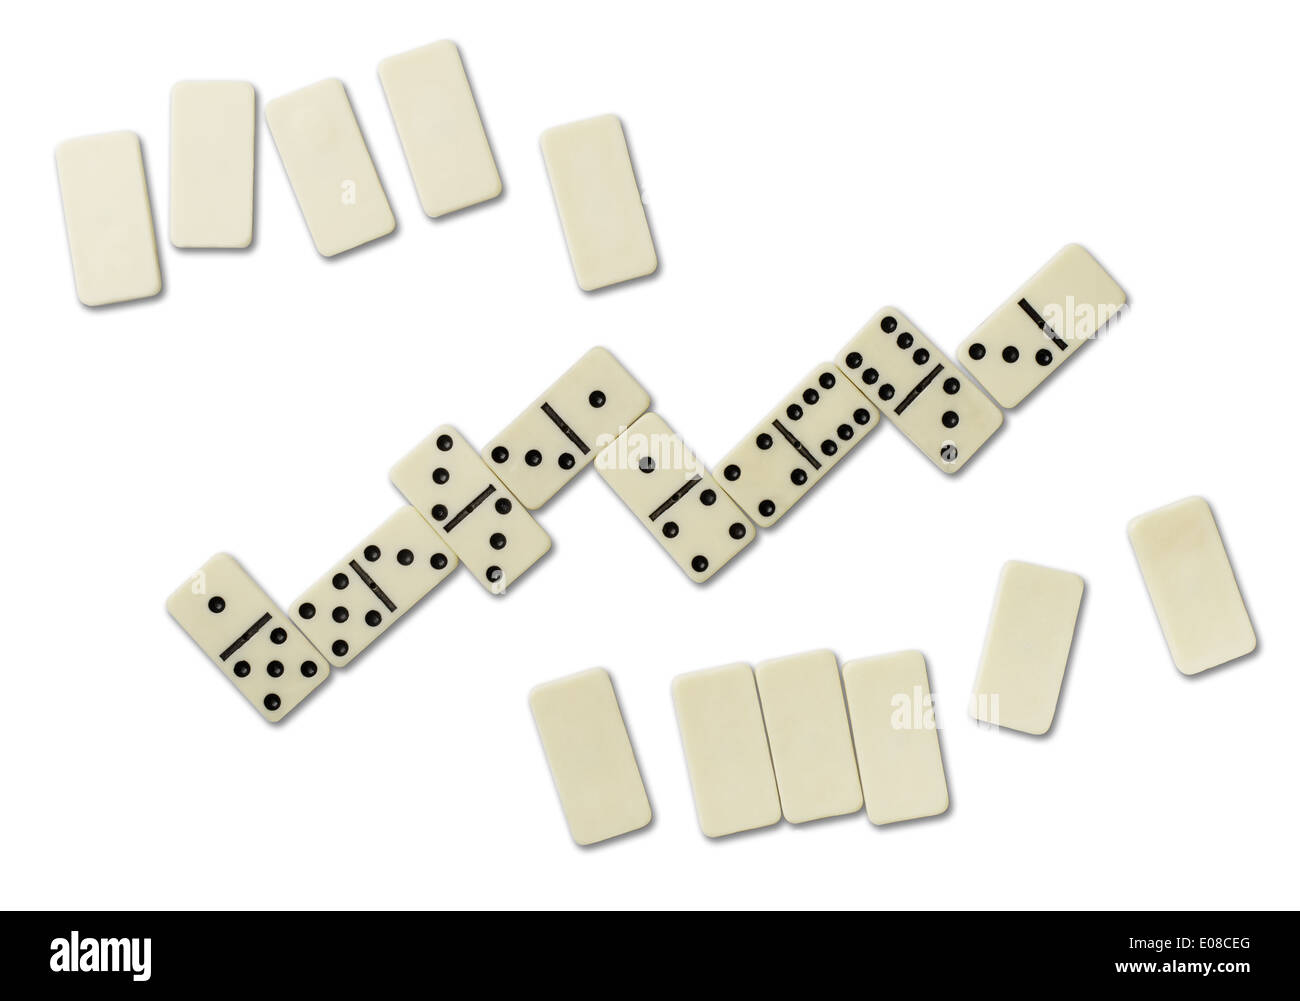 Top view of domino games isolated on white - Stock Image